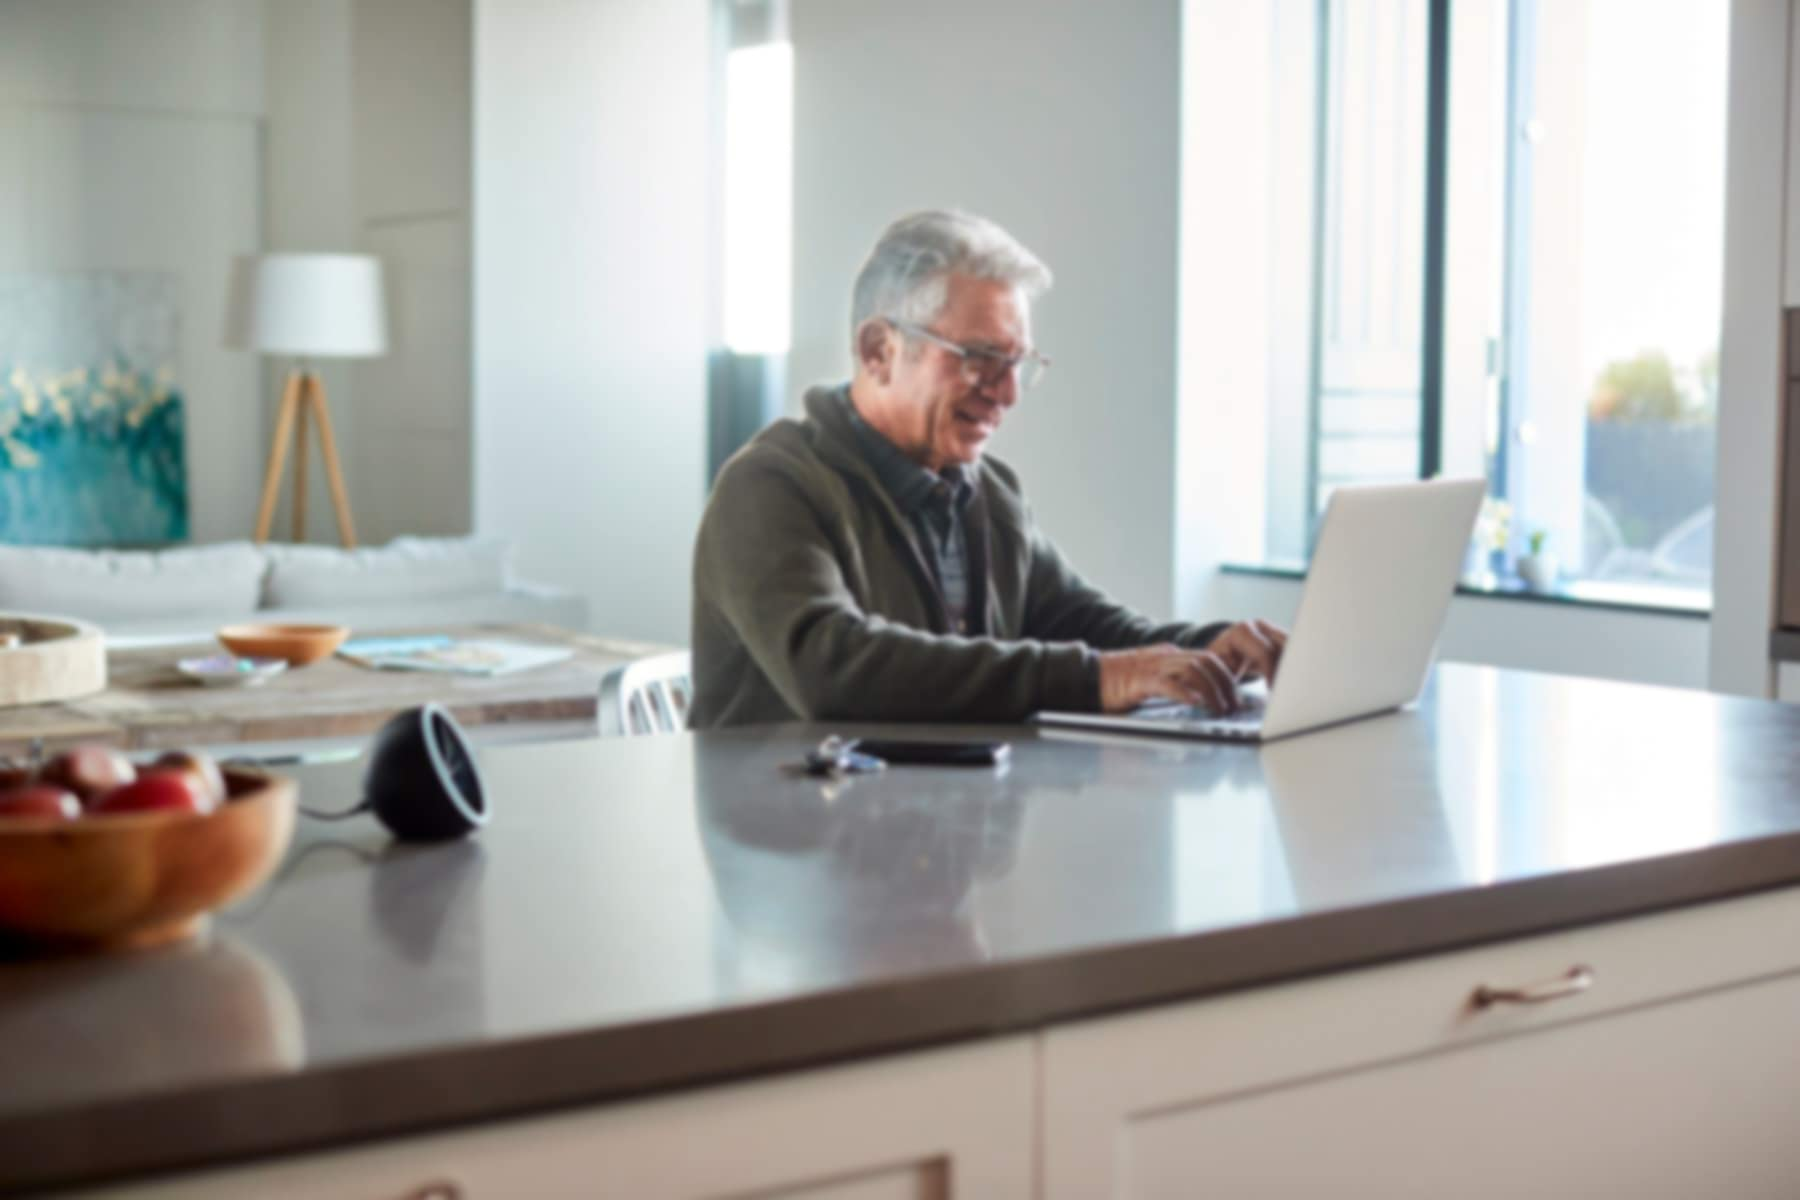 Older gentleman sits at a kitchen counter while typing on a laptop.